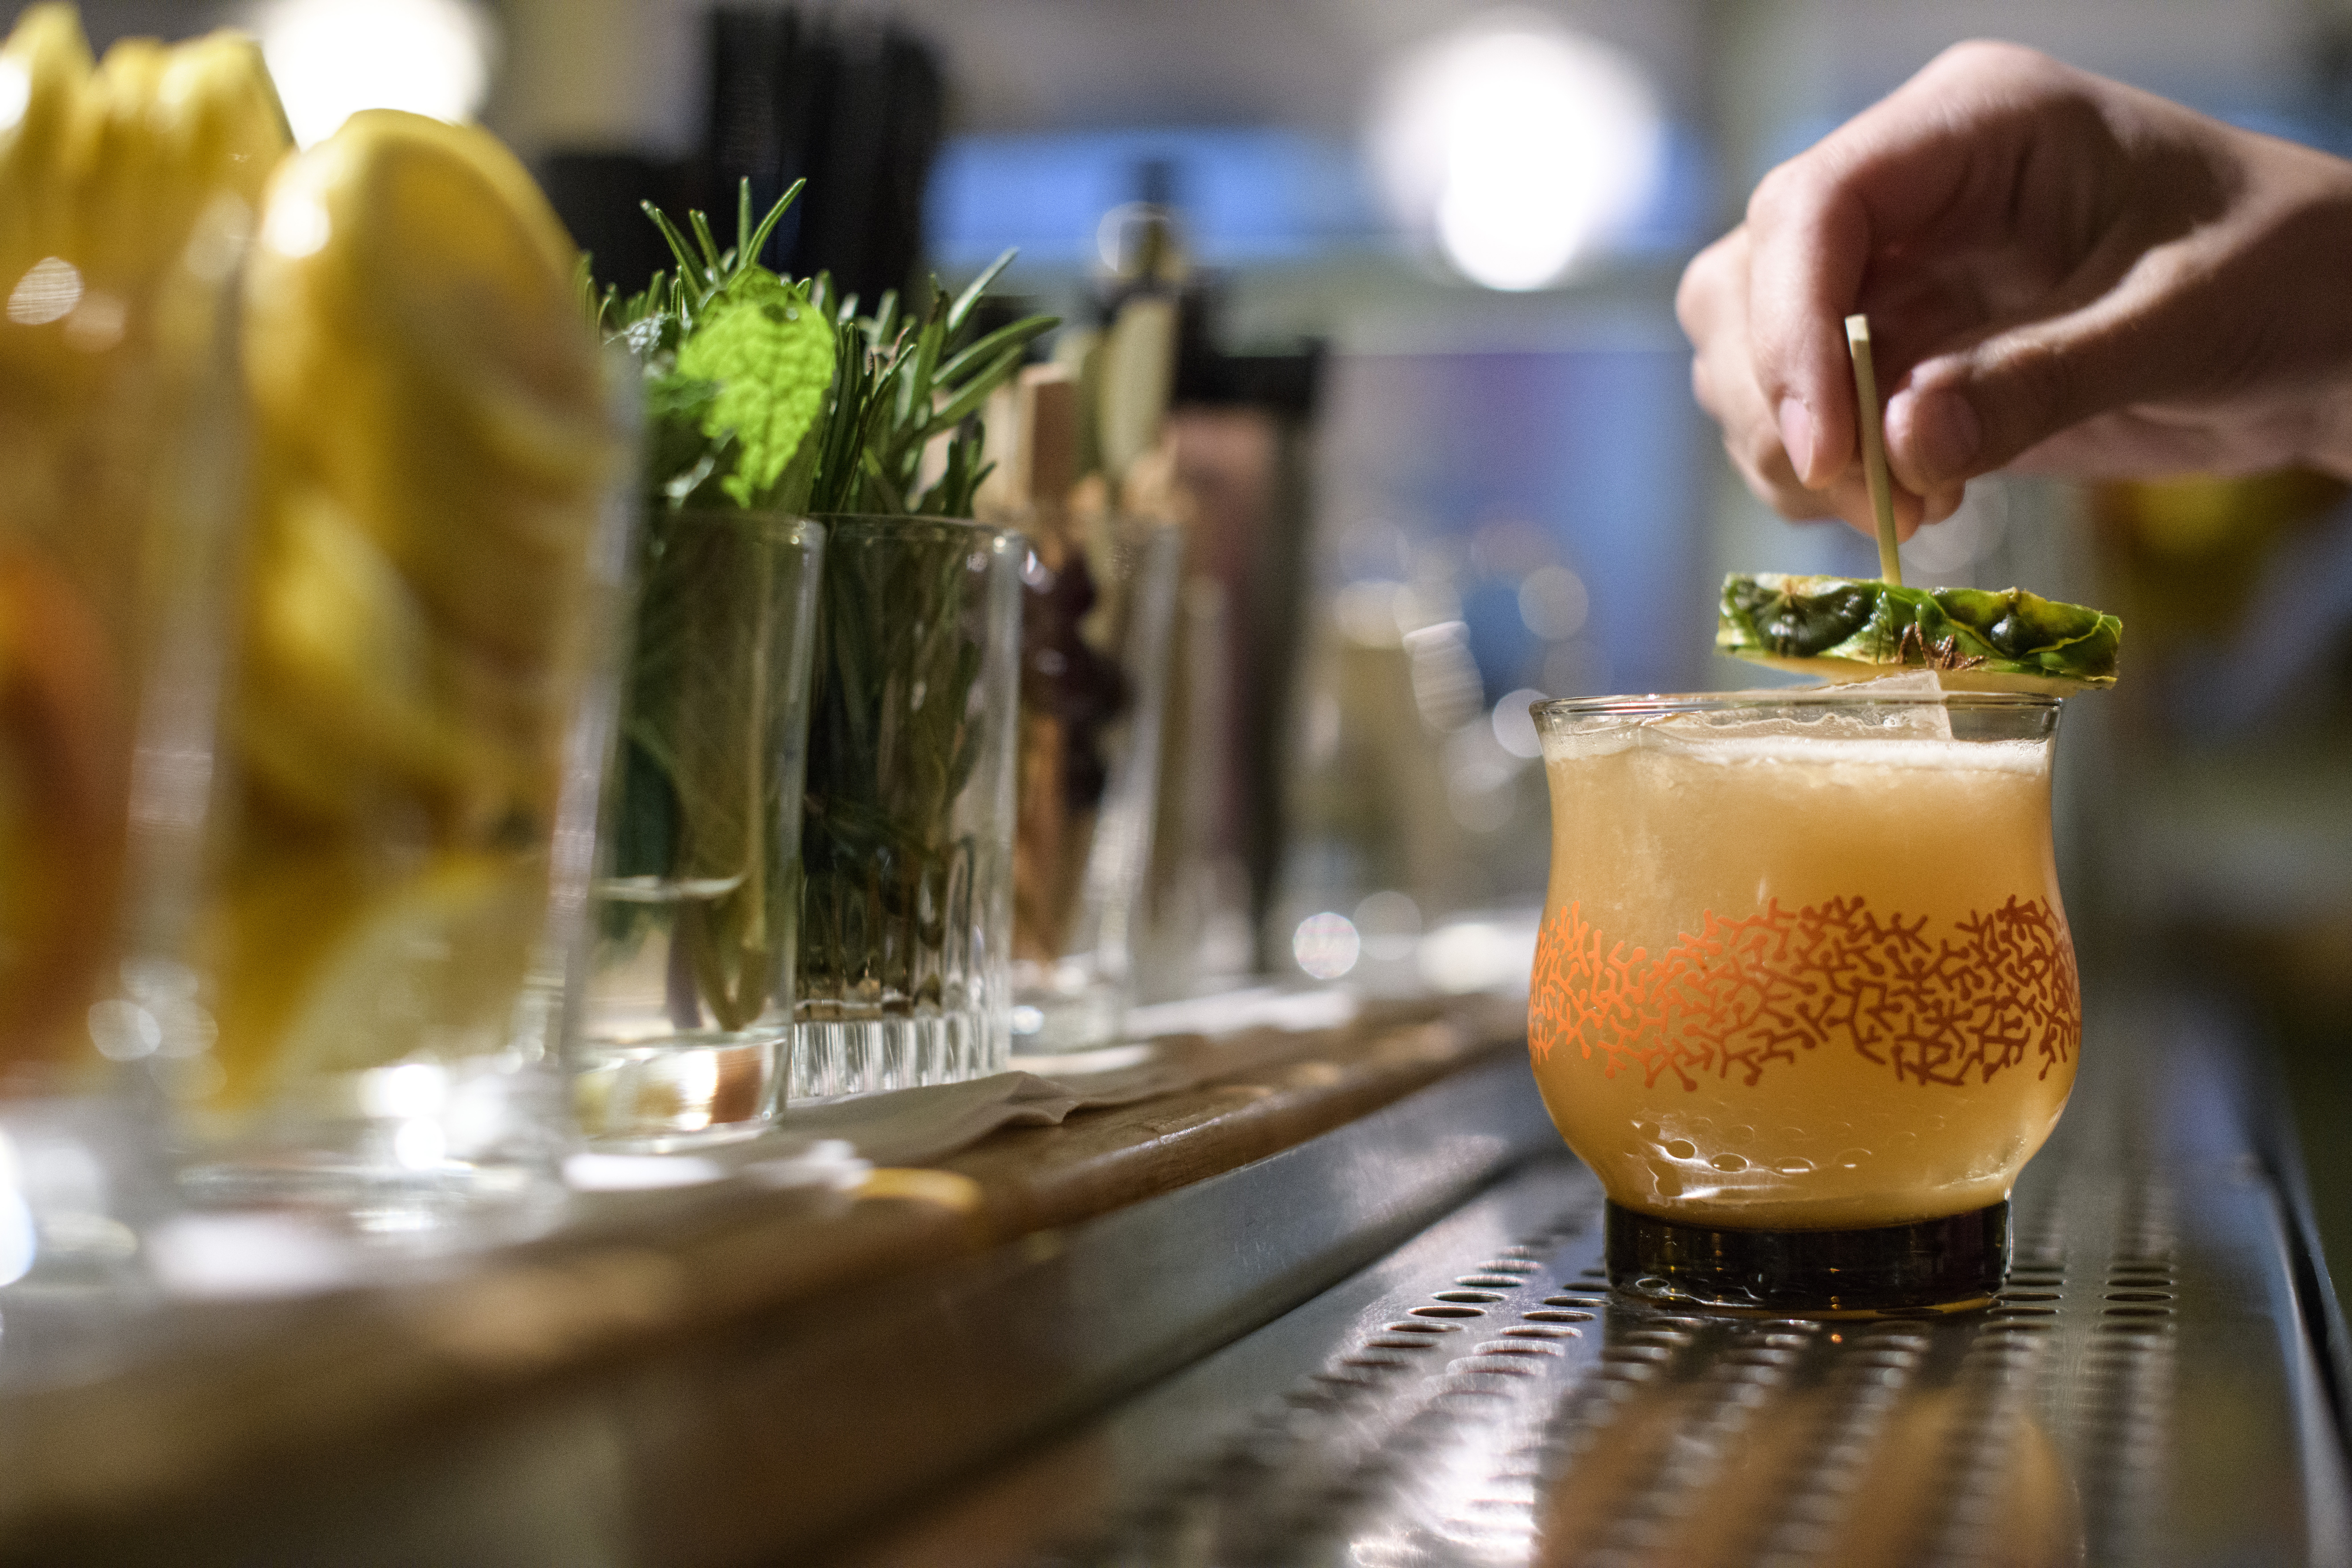 A Trendy Pineapple Cocktail photo